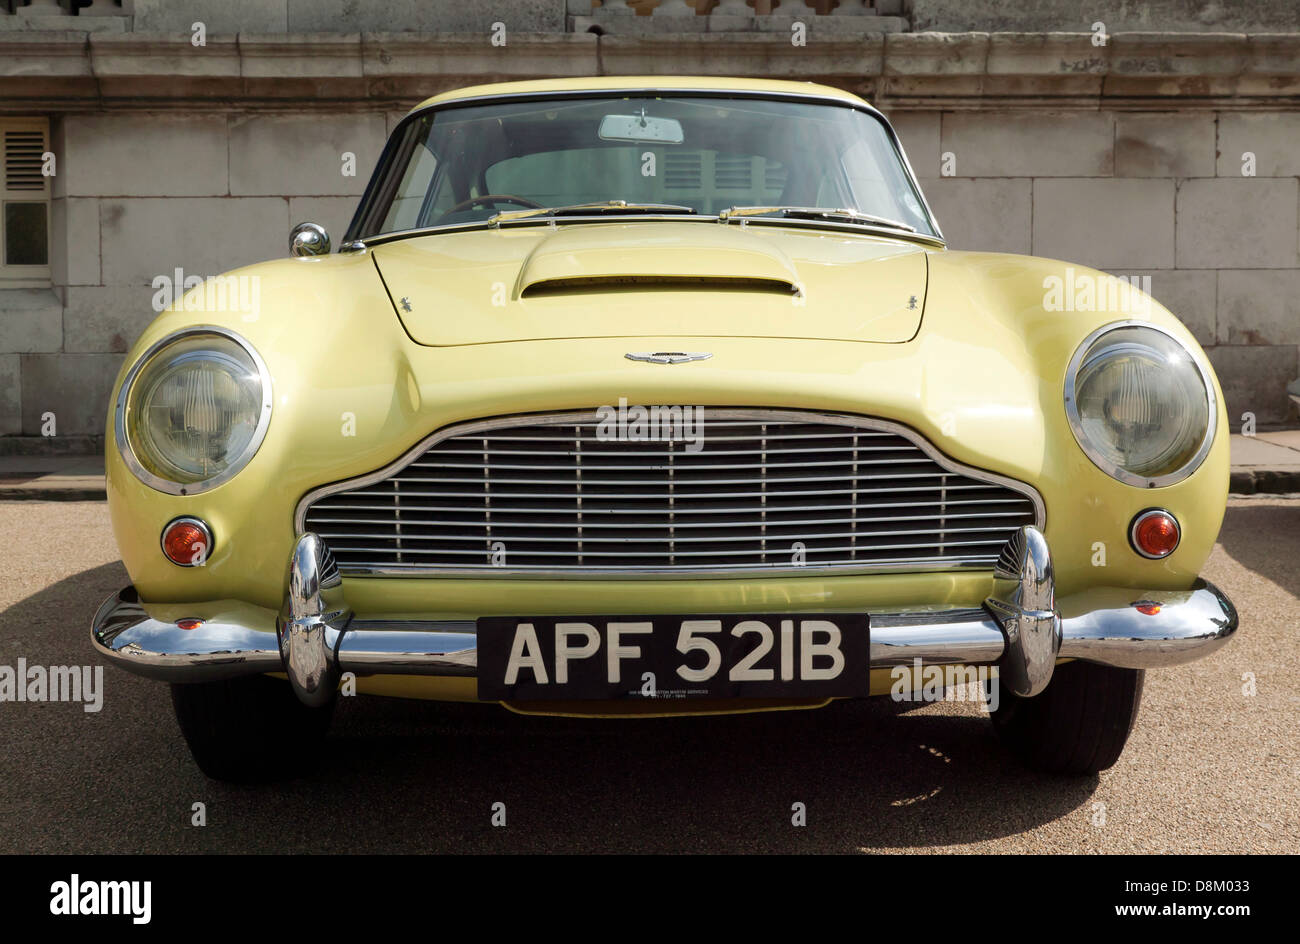 Front View Of A Classic Yellow 1964 Aston Martin Db5 On Display At Stock Photo Alamy